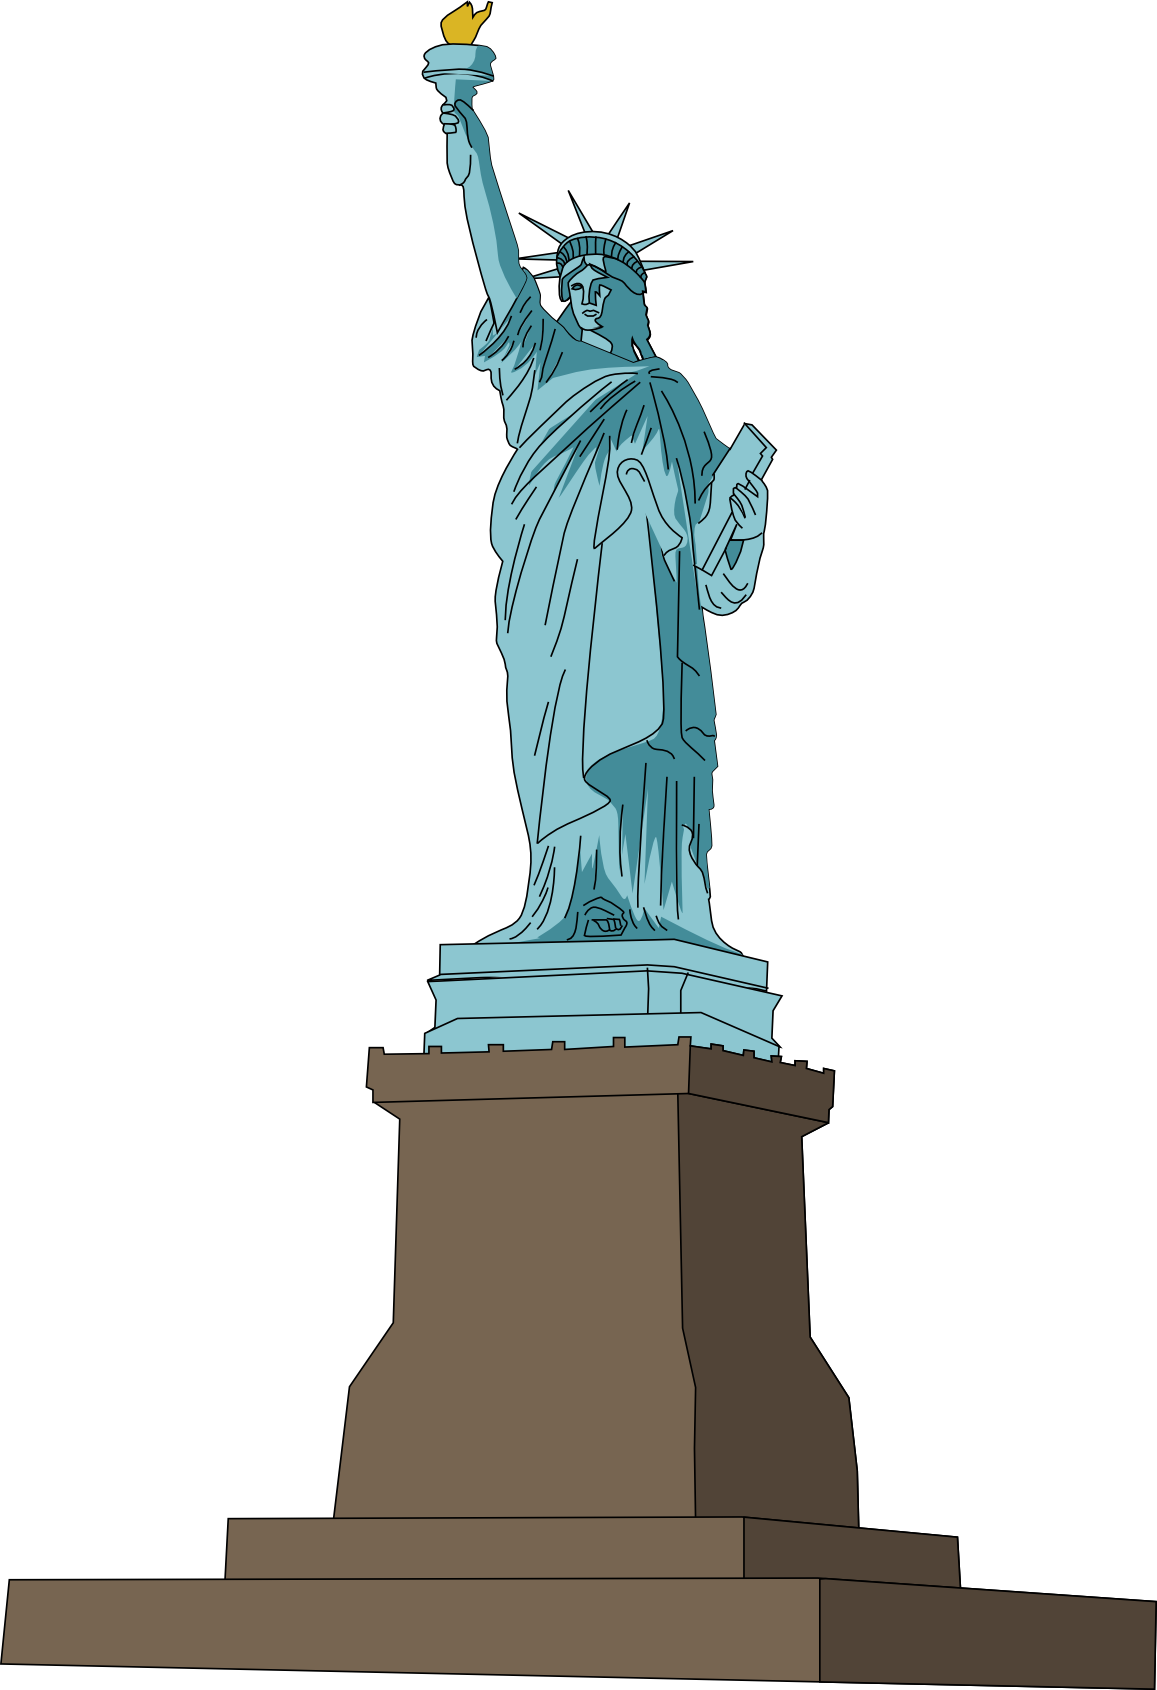 Free Statue of Liberty Clip Art